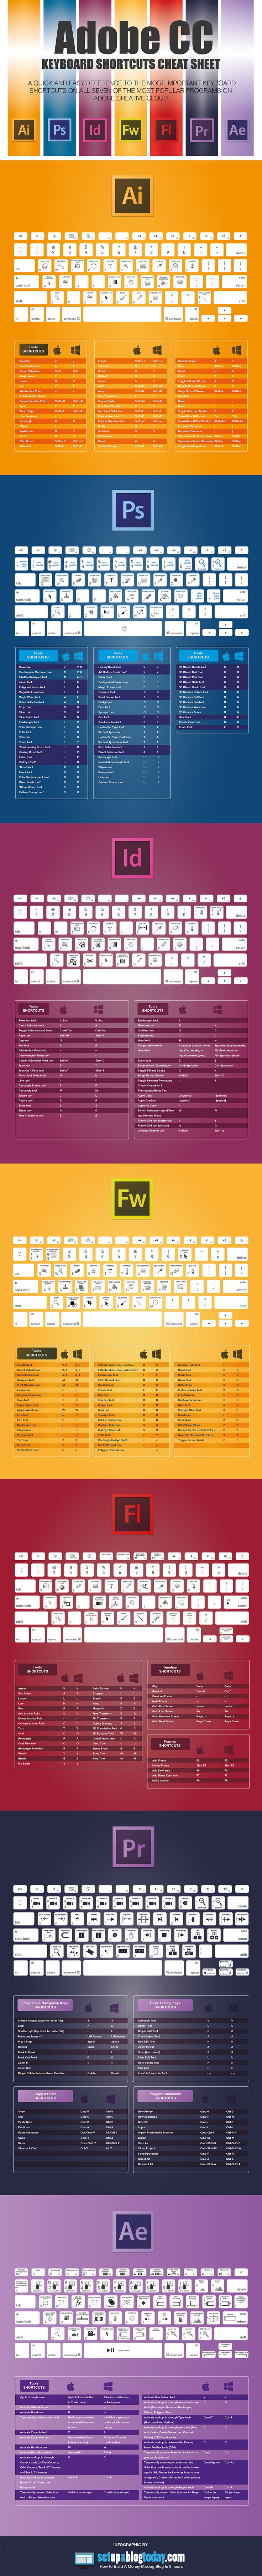 An infographics about all shortcuts within Adobe's Creative Suite